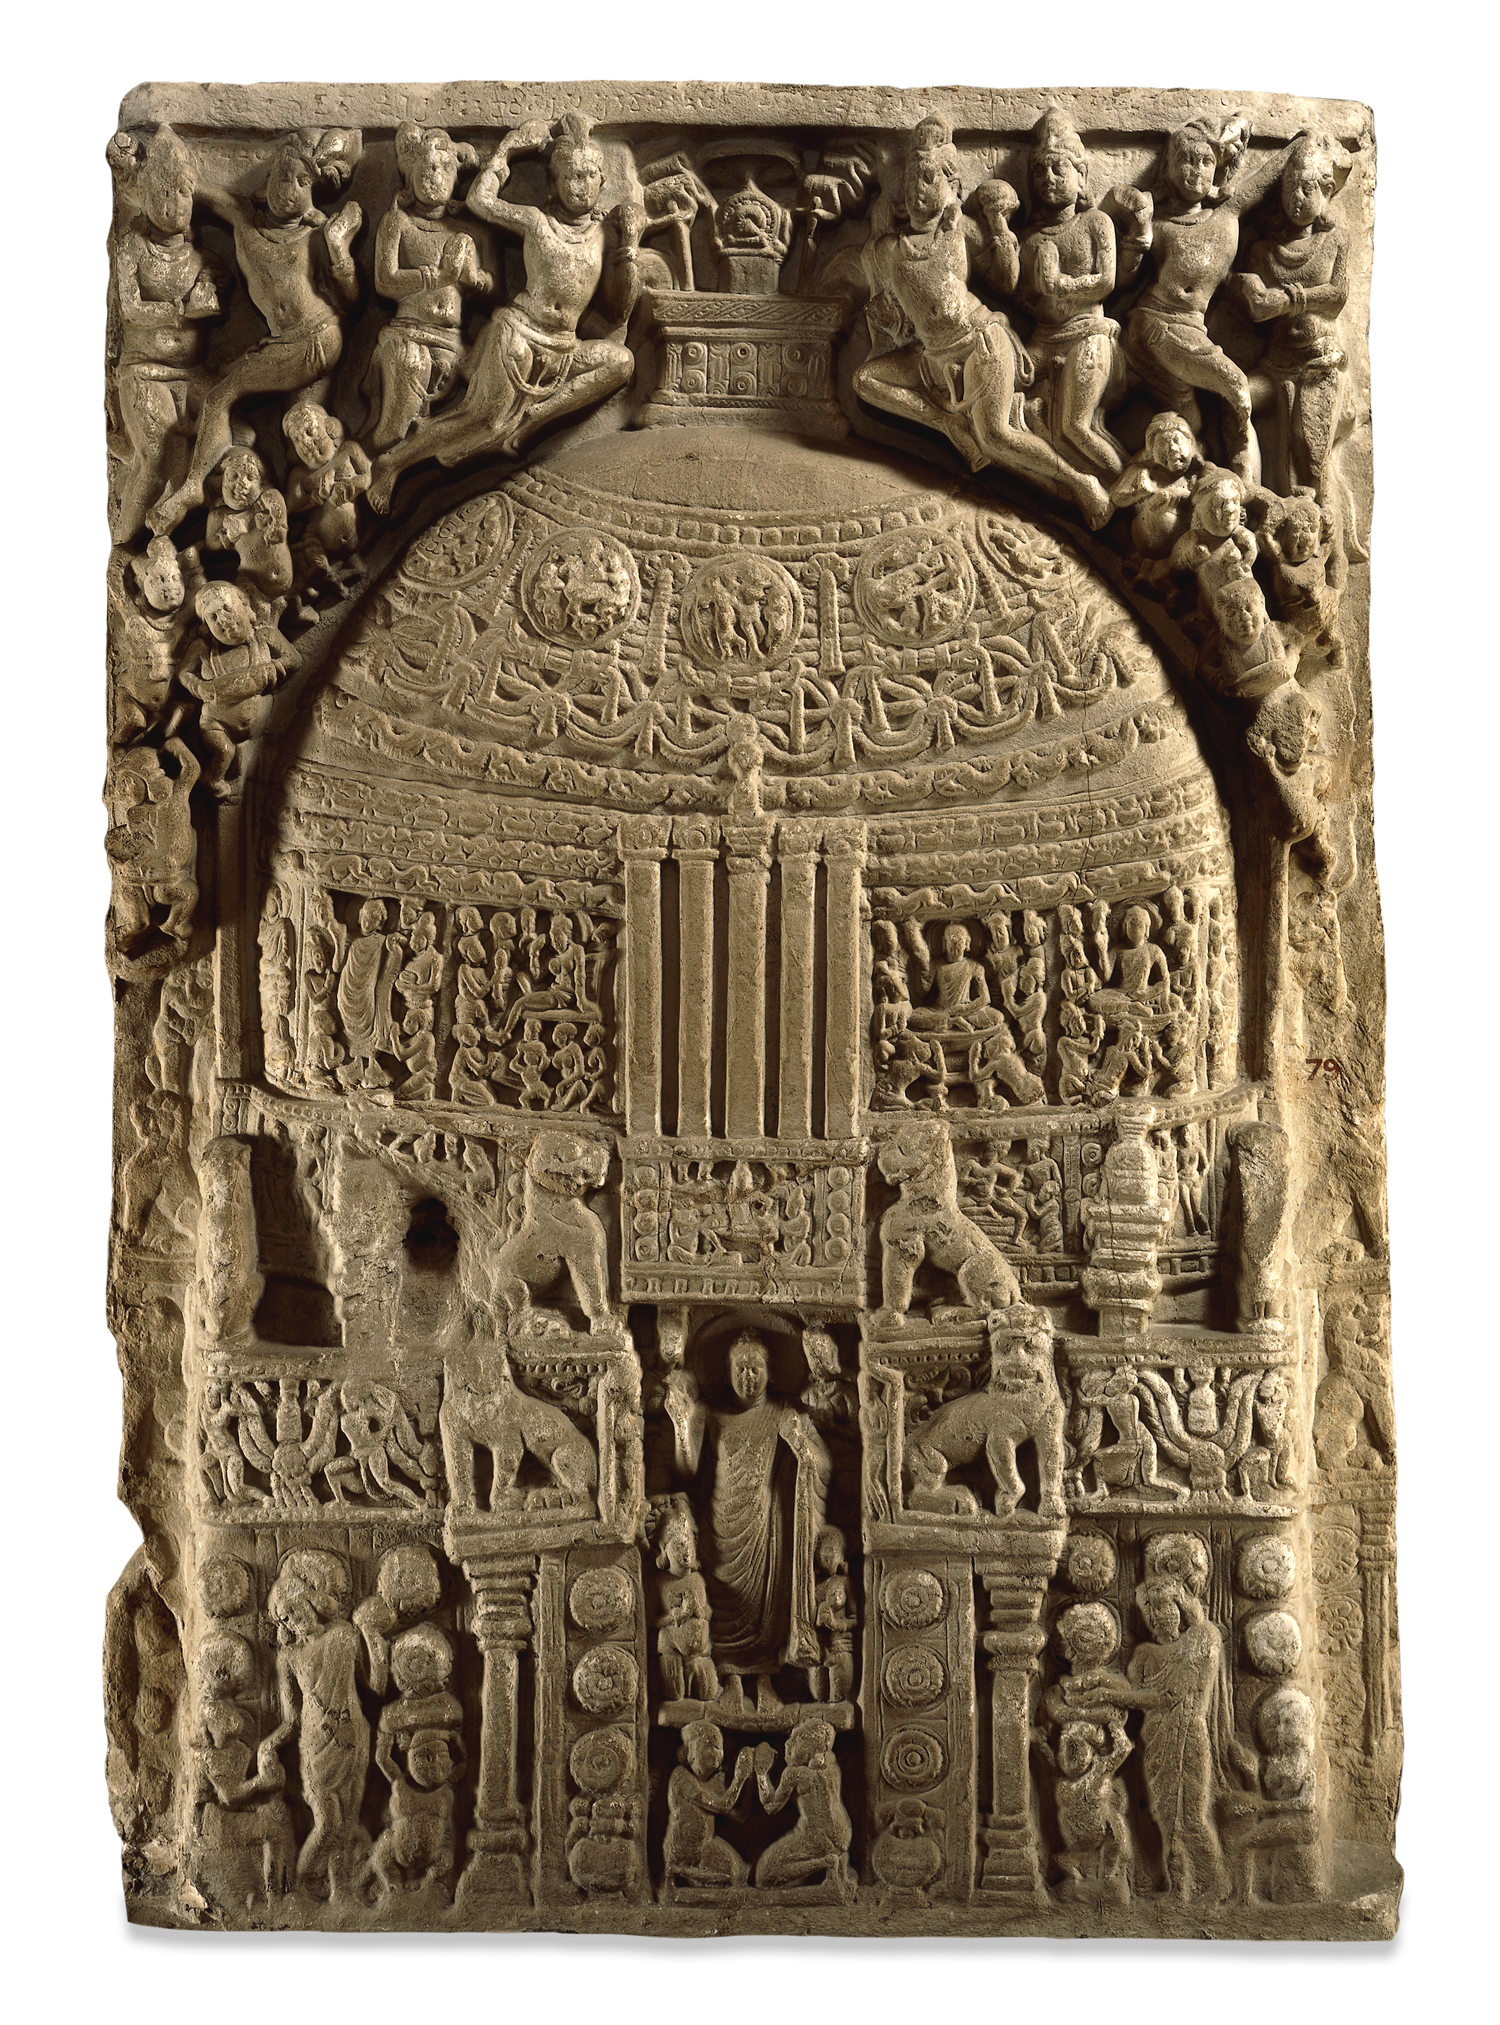 Two-sided limestone relief from the Great Shrine at Amaravati (India), carved first in the 1stcentury BC (featuring the Buddha as an empty throne), and then turned over and carved in the 3rd century AD (featuring a corporal Buddha standing in front of the shrine).